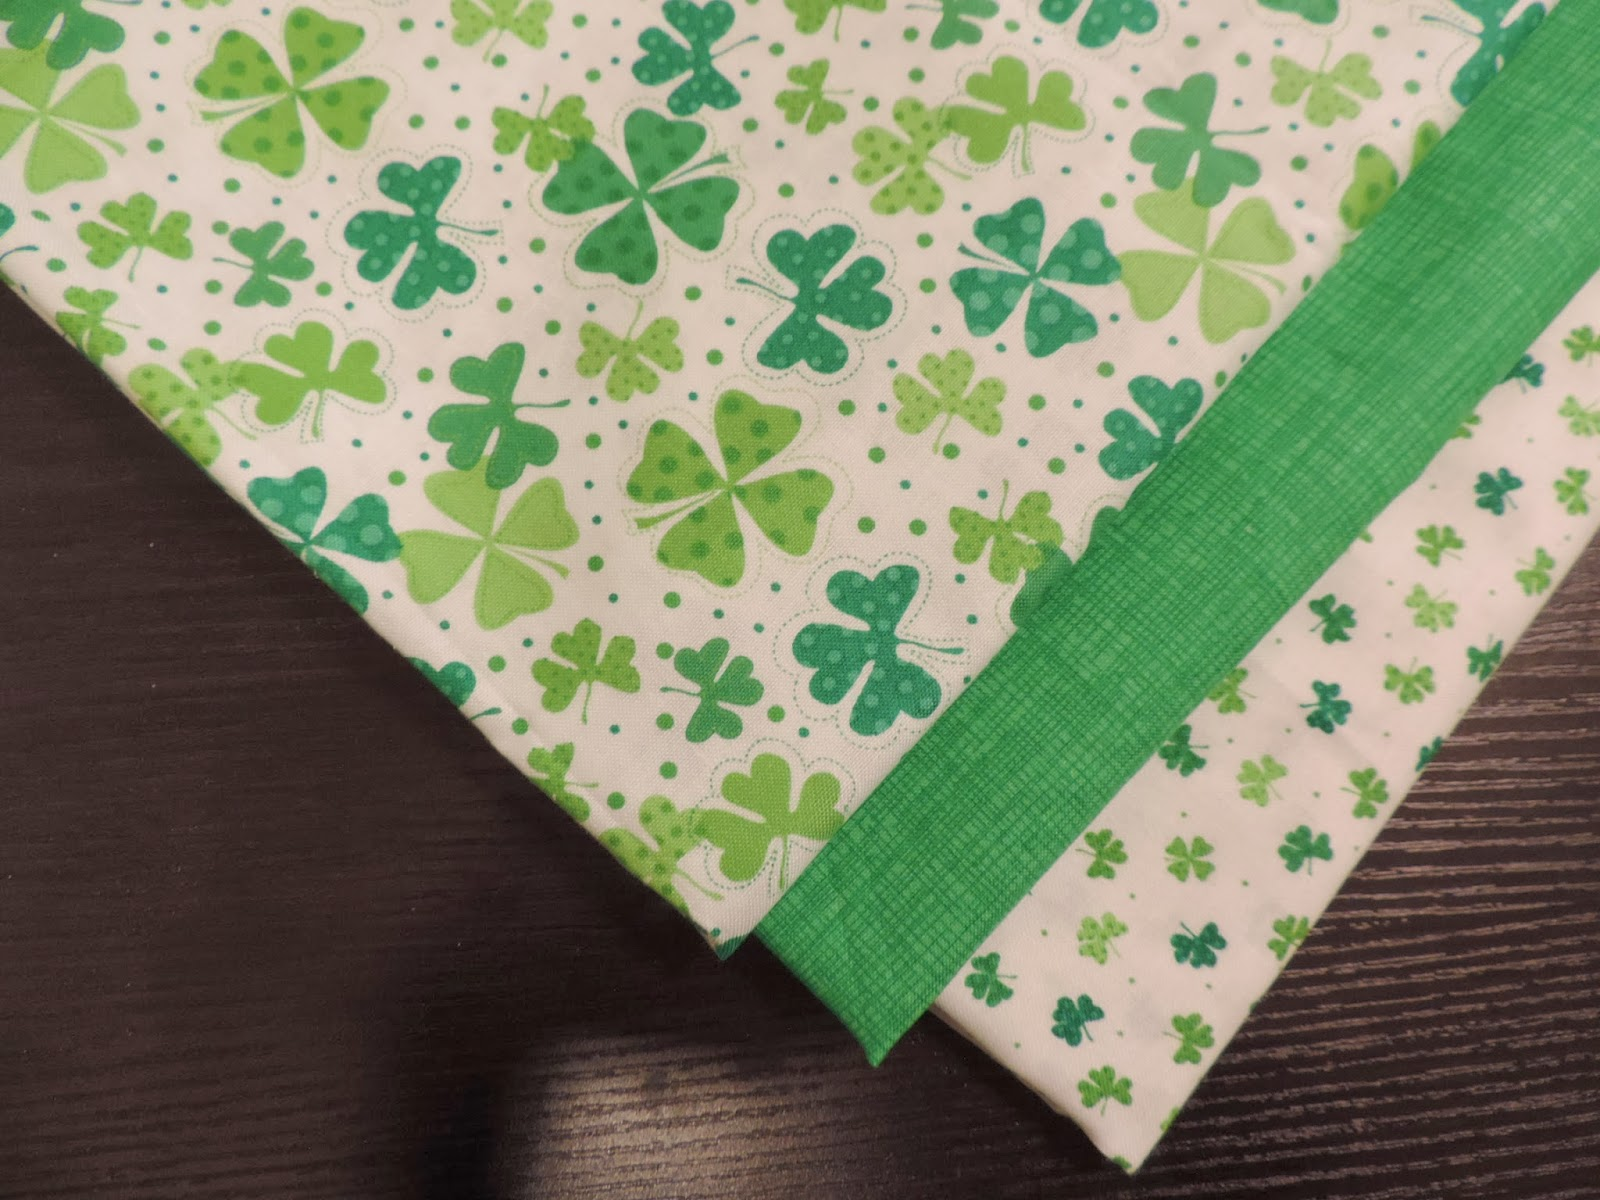 timeless treasures celebrating patrick day with sew much good accent your focus table runner free pattern the greatest part this apron giant ric rac made easy iron fusible you